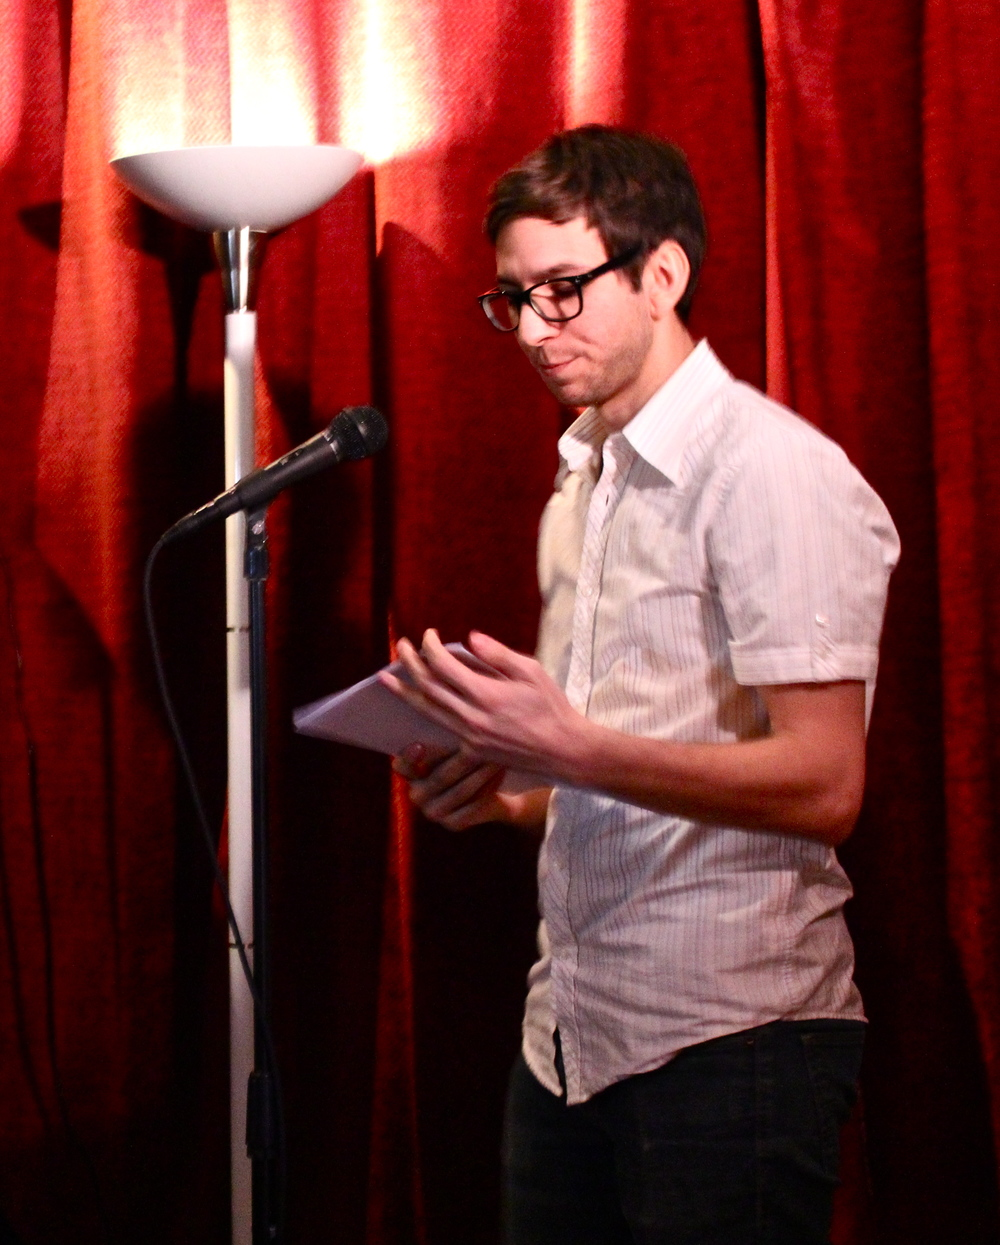 Stephen Danos, poet, reading at Paschall Bar as part of the Kraken Reading Series